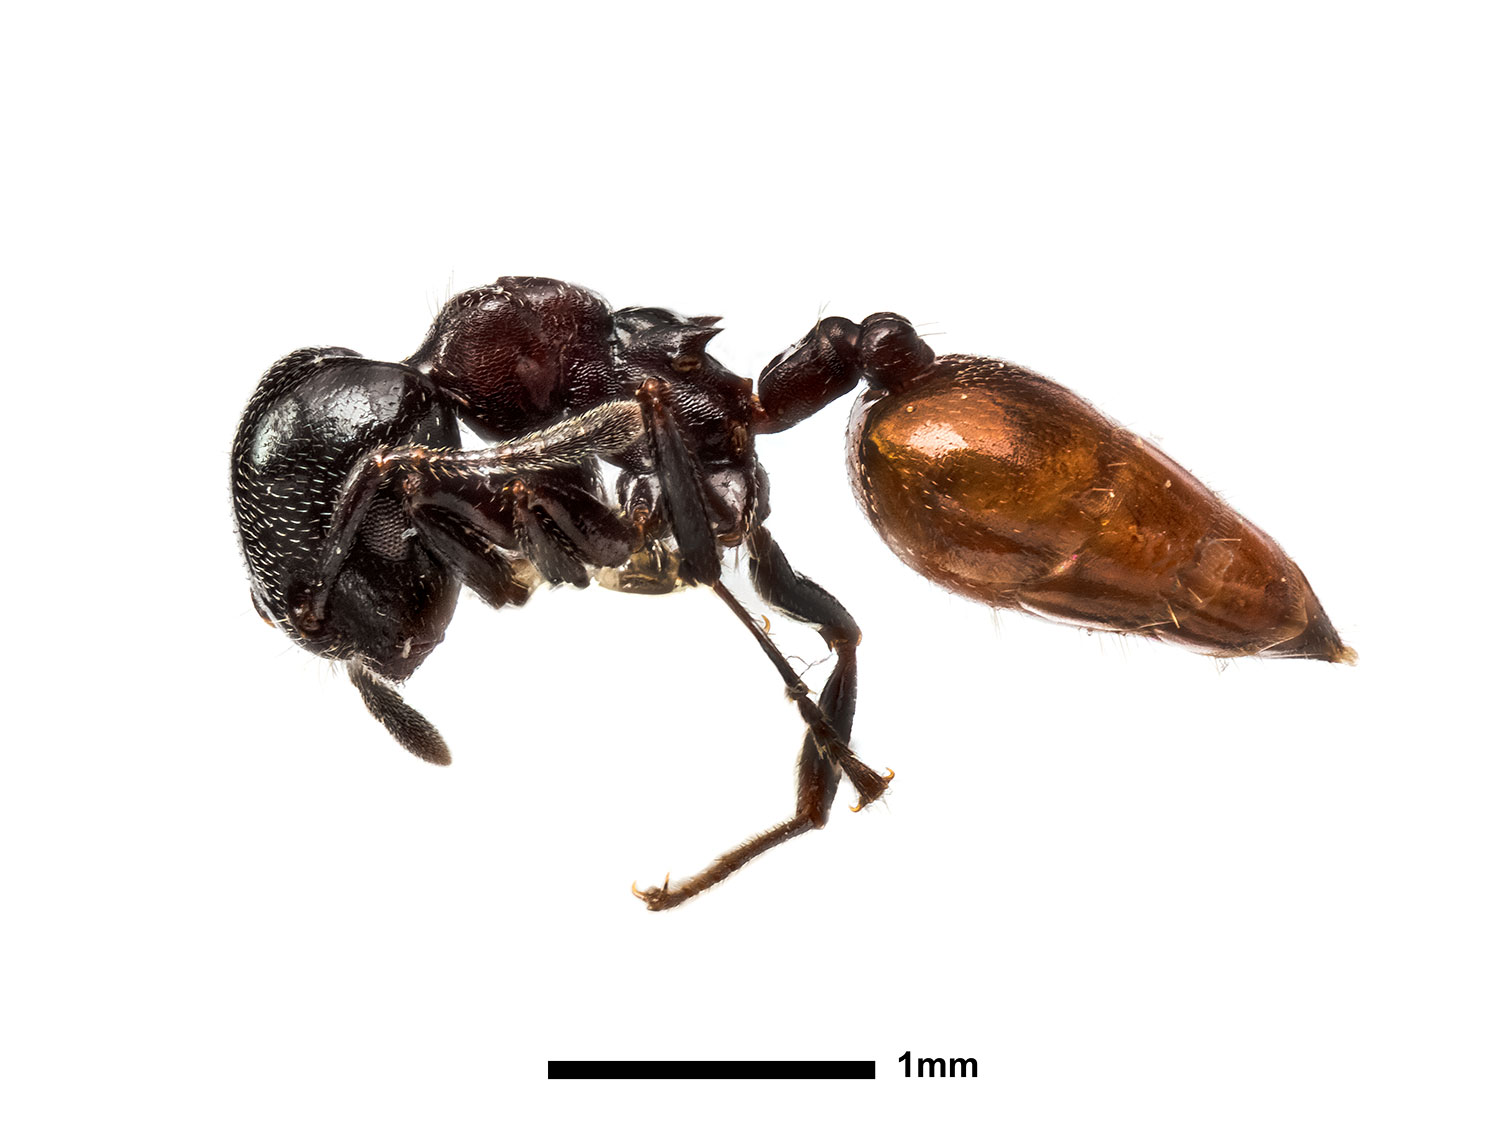 The acacia ant is displayed in the Natural History Museum exhibit as part of the Fantastic Beasts: The Wonder of Nature exhibit.